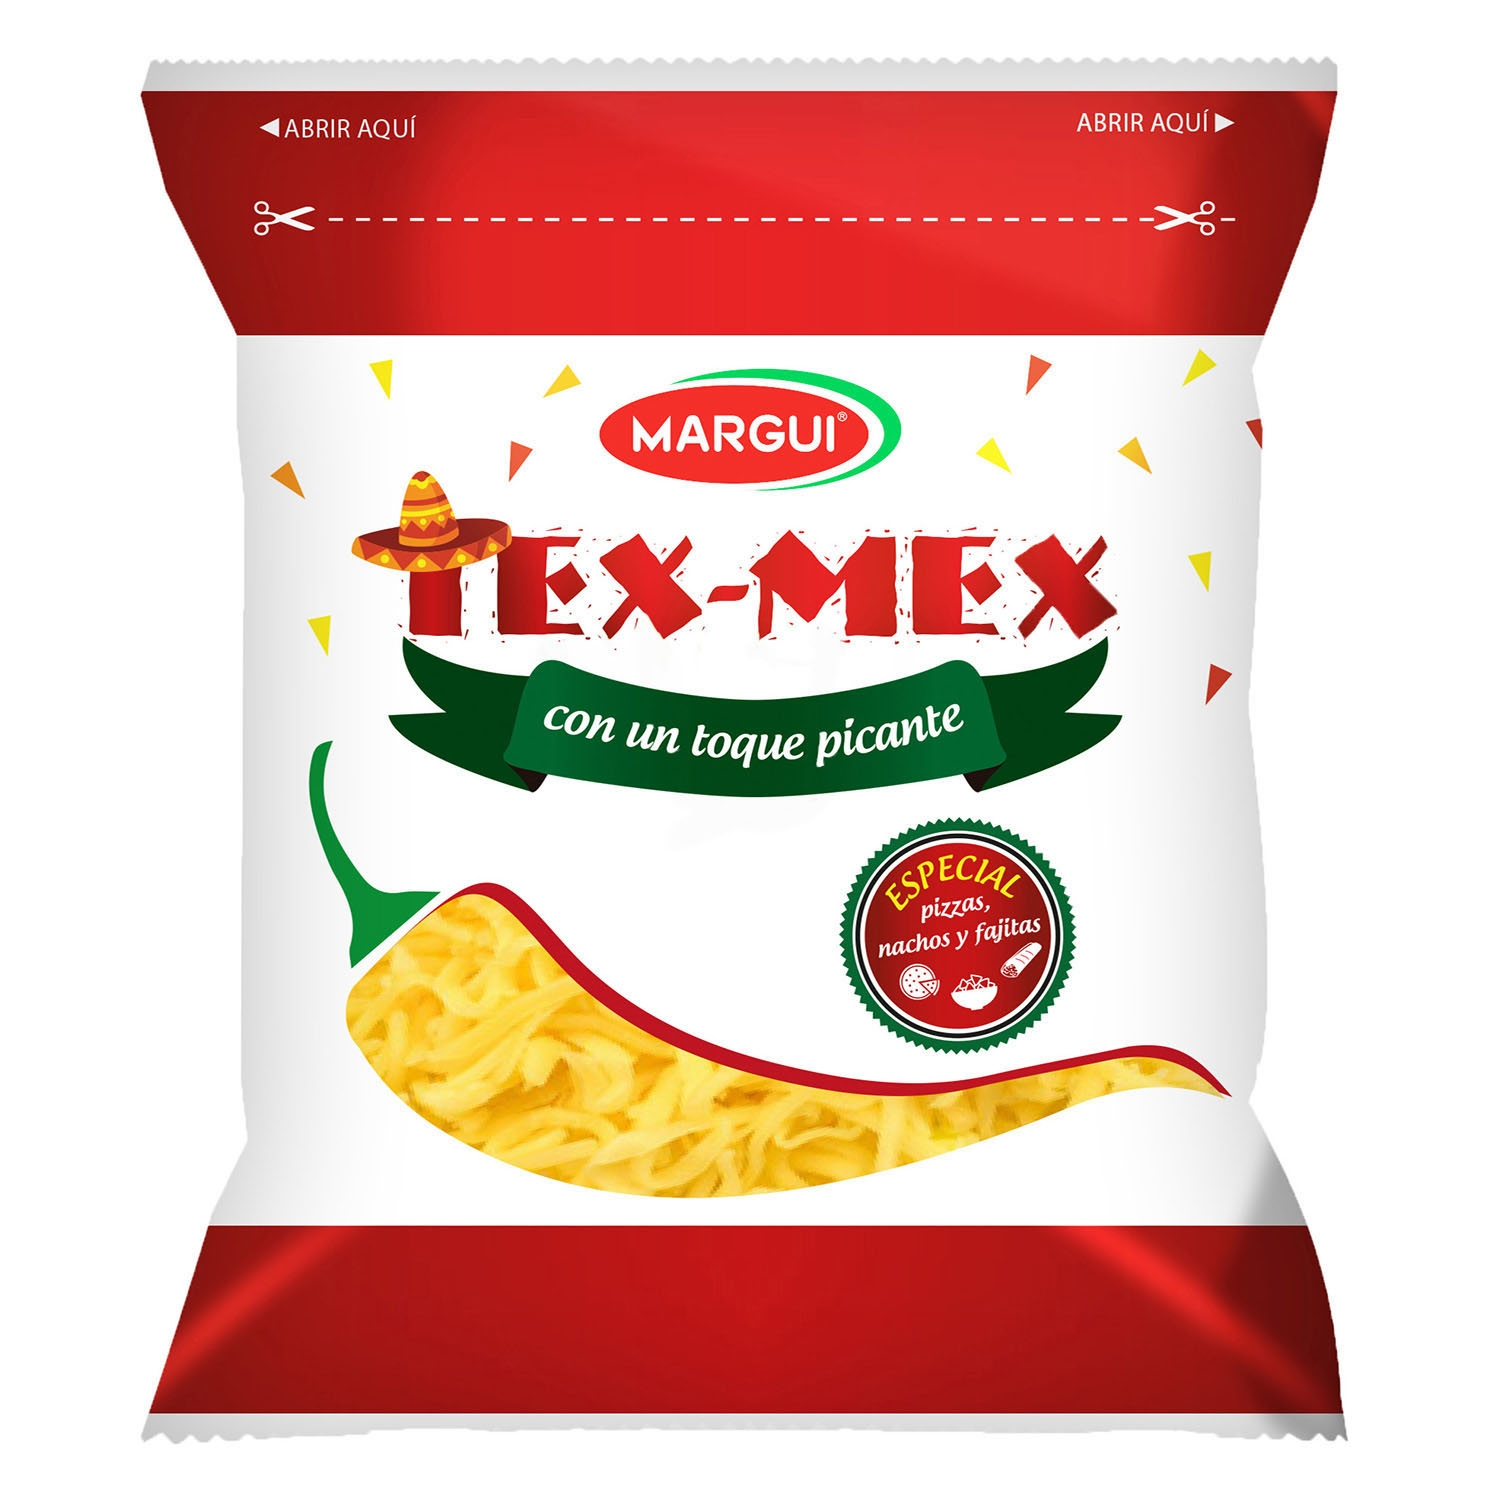 Queso rallado Tex-mex Margui 200 g.